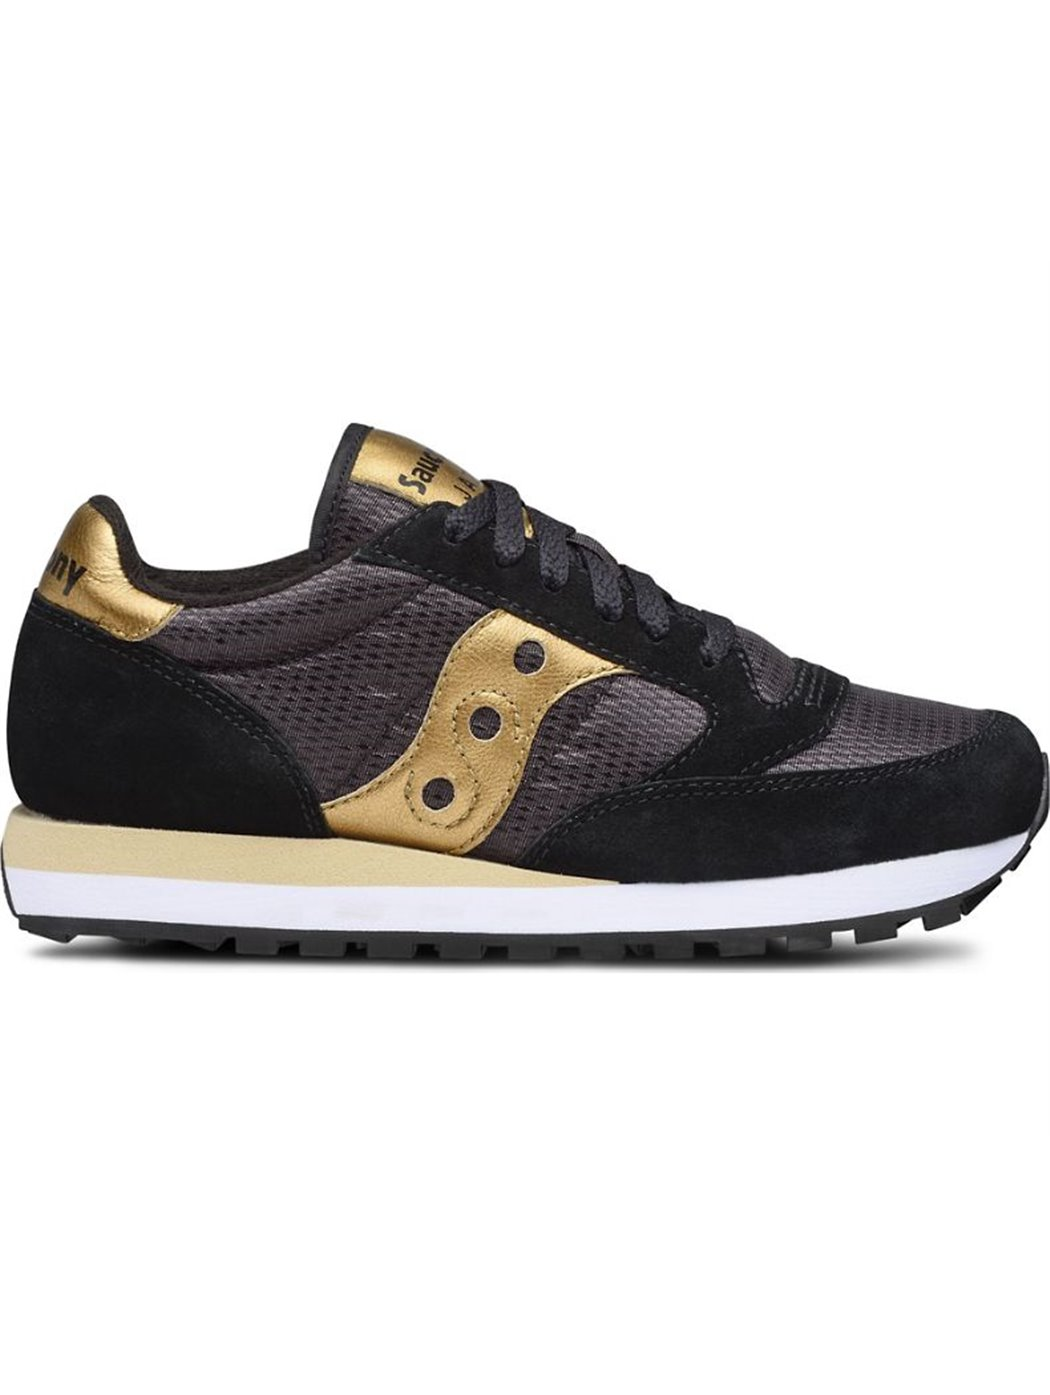 SAUCONY 1044-521 BLACK-GOLD SNEAKERS